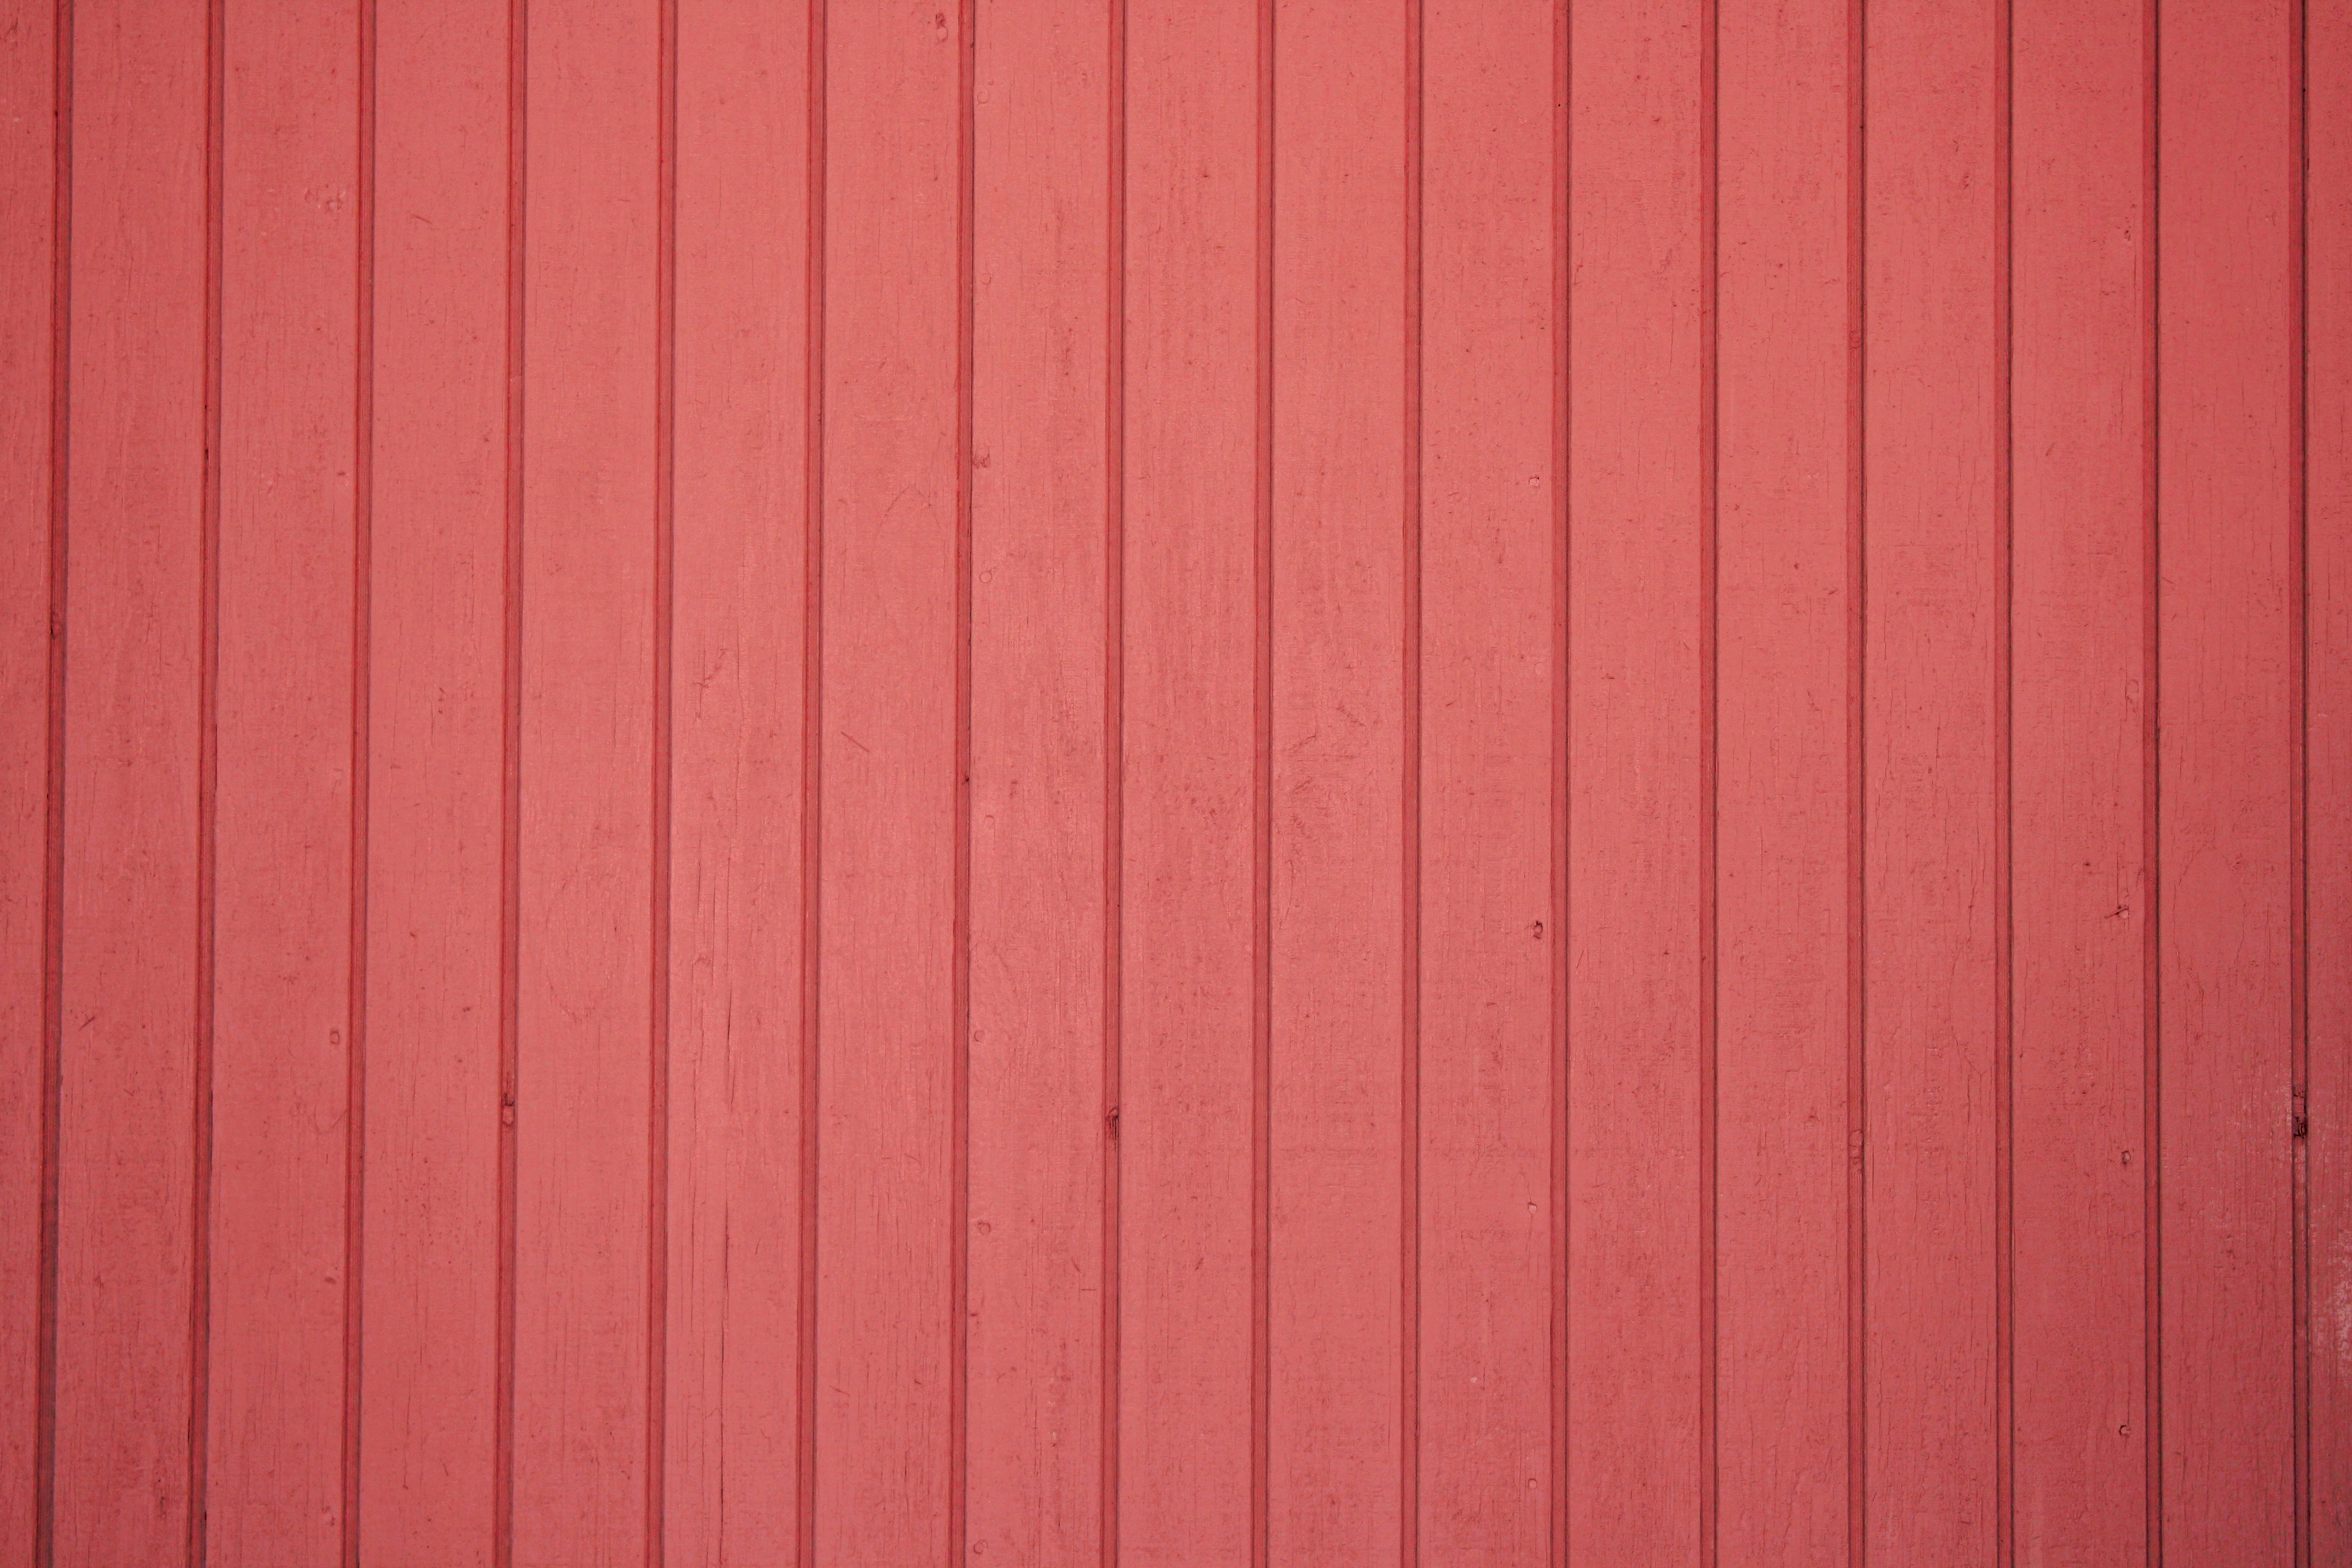 Red Painted Vertical Siding Texture Picture Free